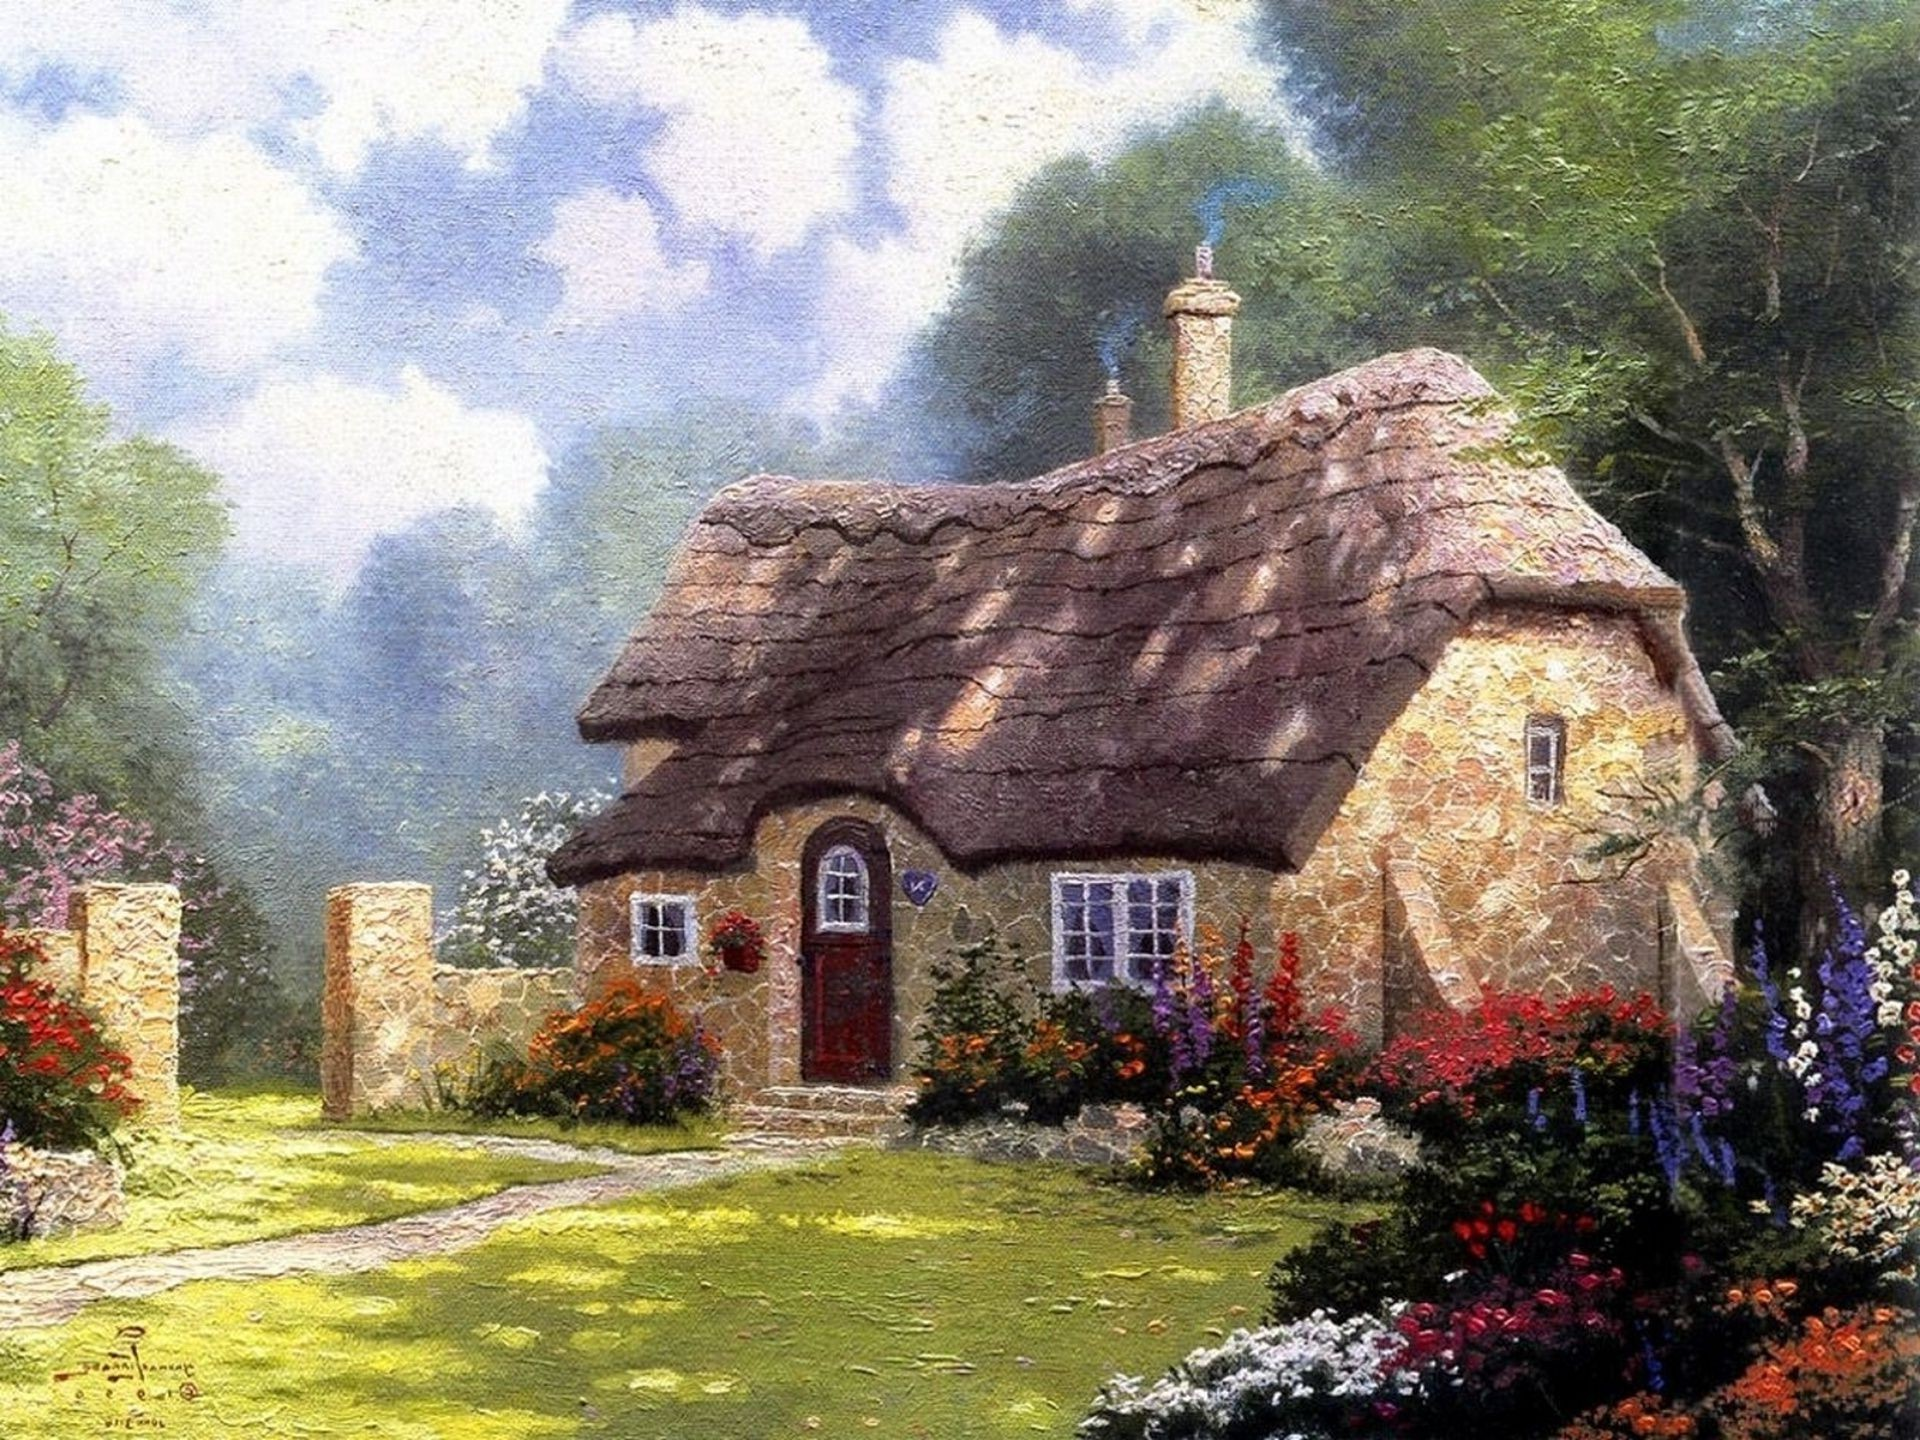 city and architecture house architecture building bungalow summer old garden rural home travel nature family stone outdoors countryside grass landscape country ancient